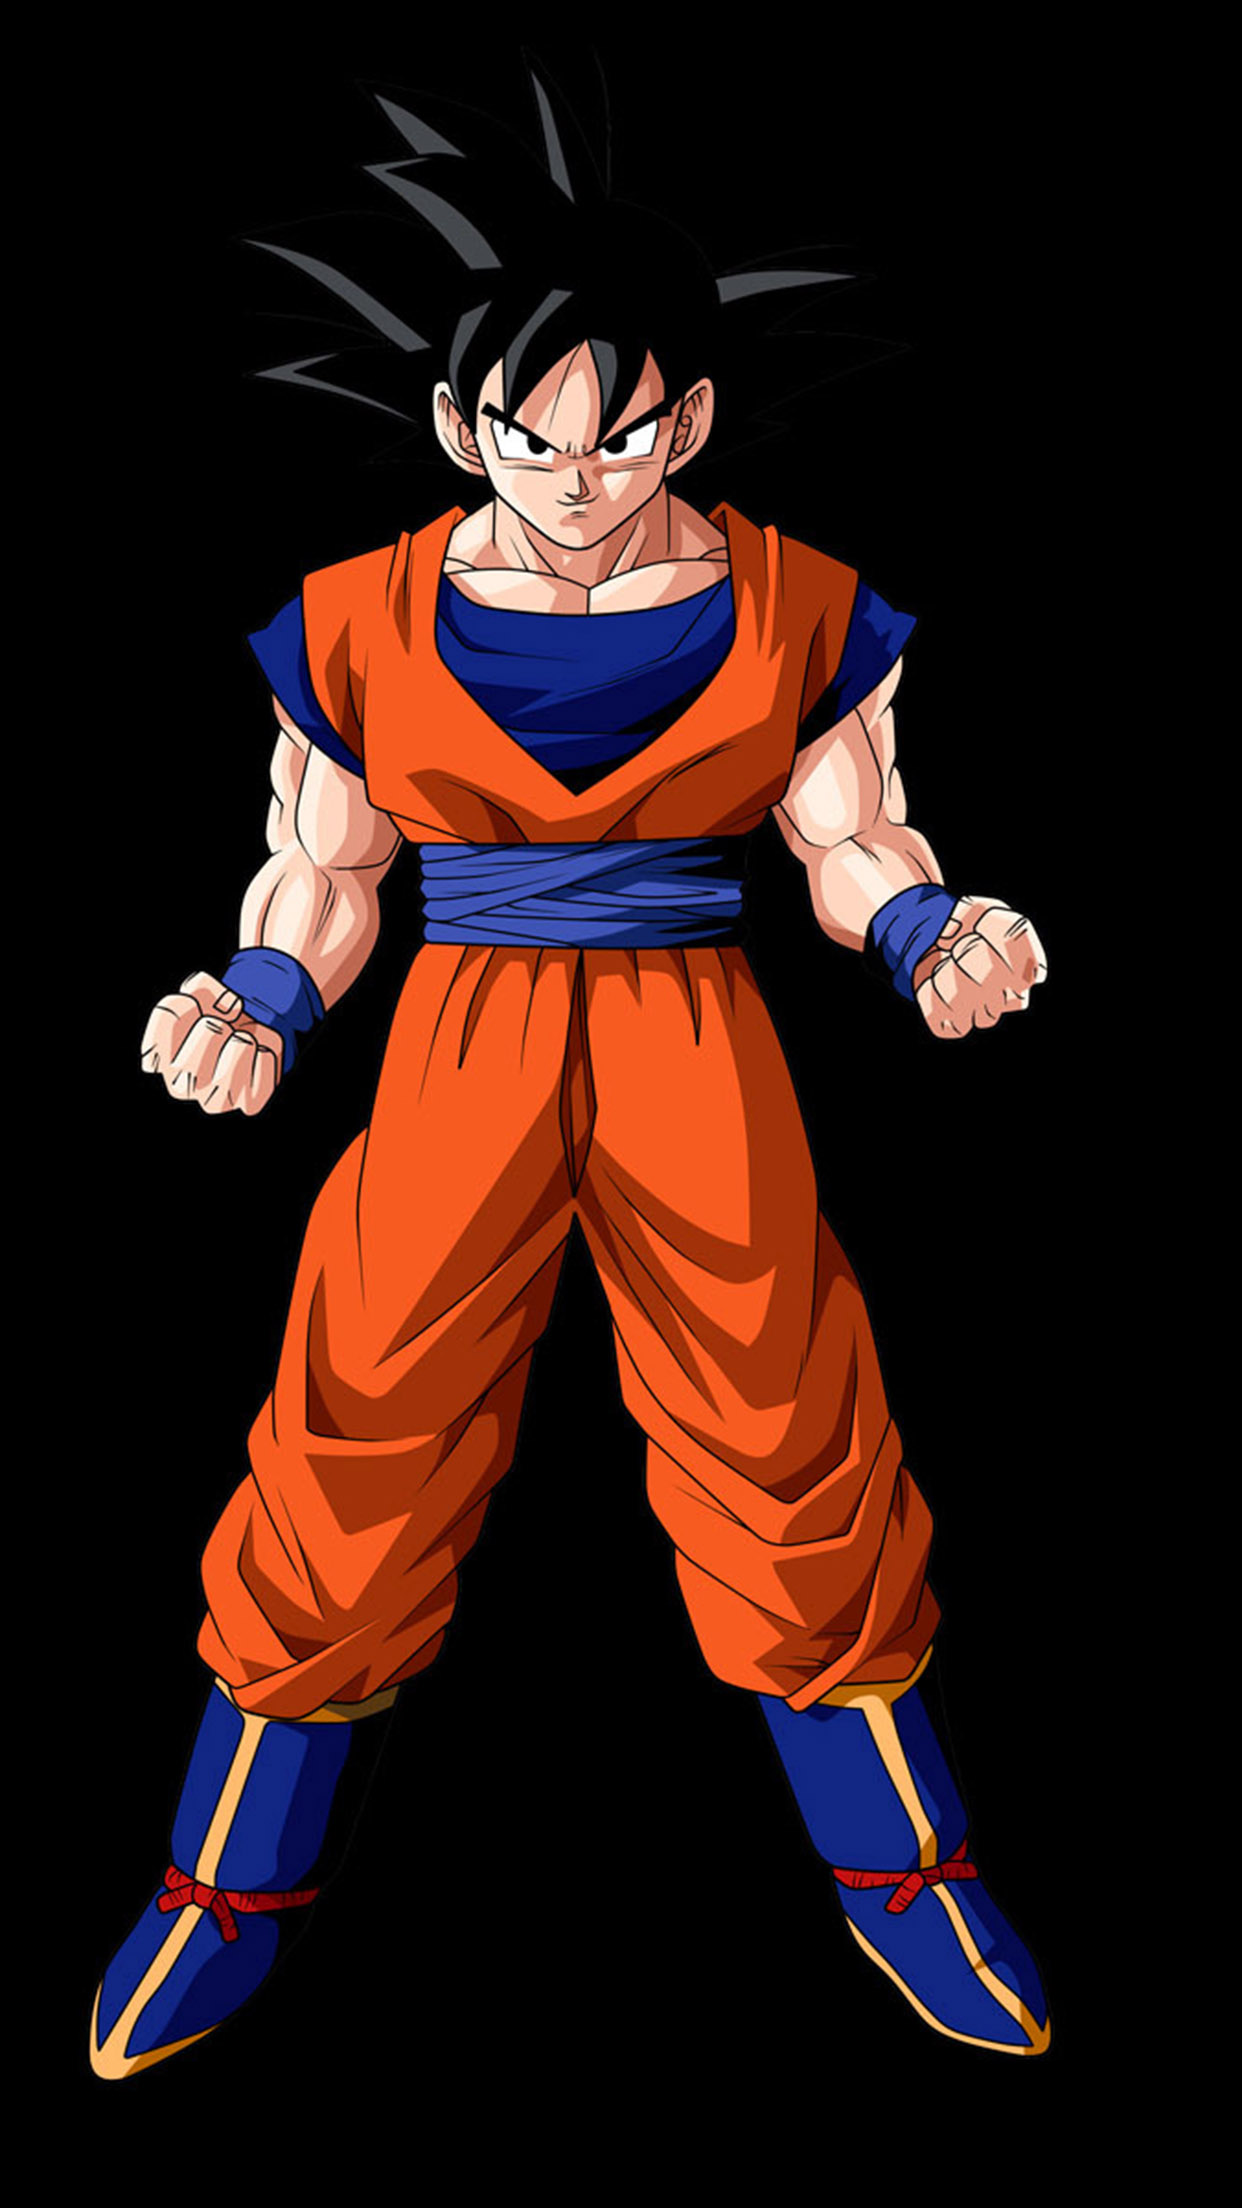 City Wallpaper Iphone Dragon Ball Z Sangoku Wallpaper For Iphone X 8 7 6